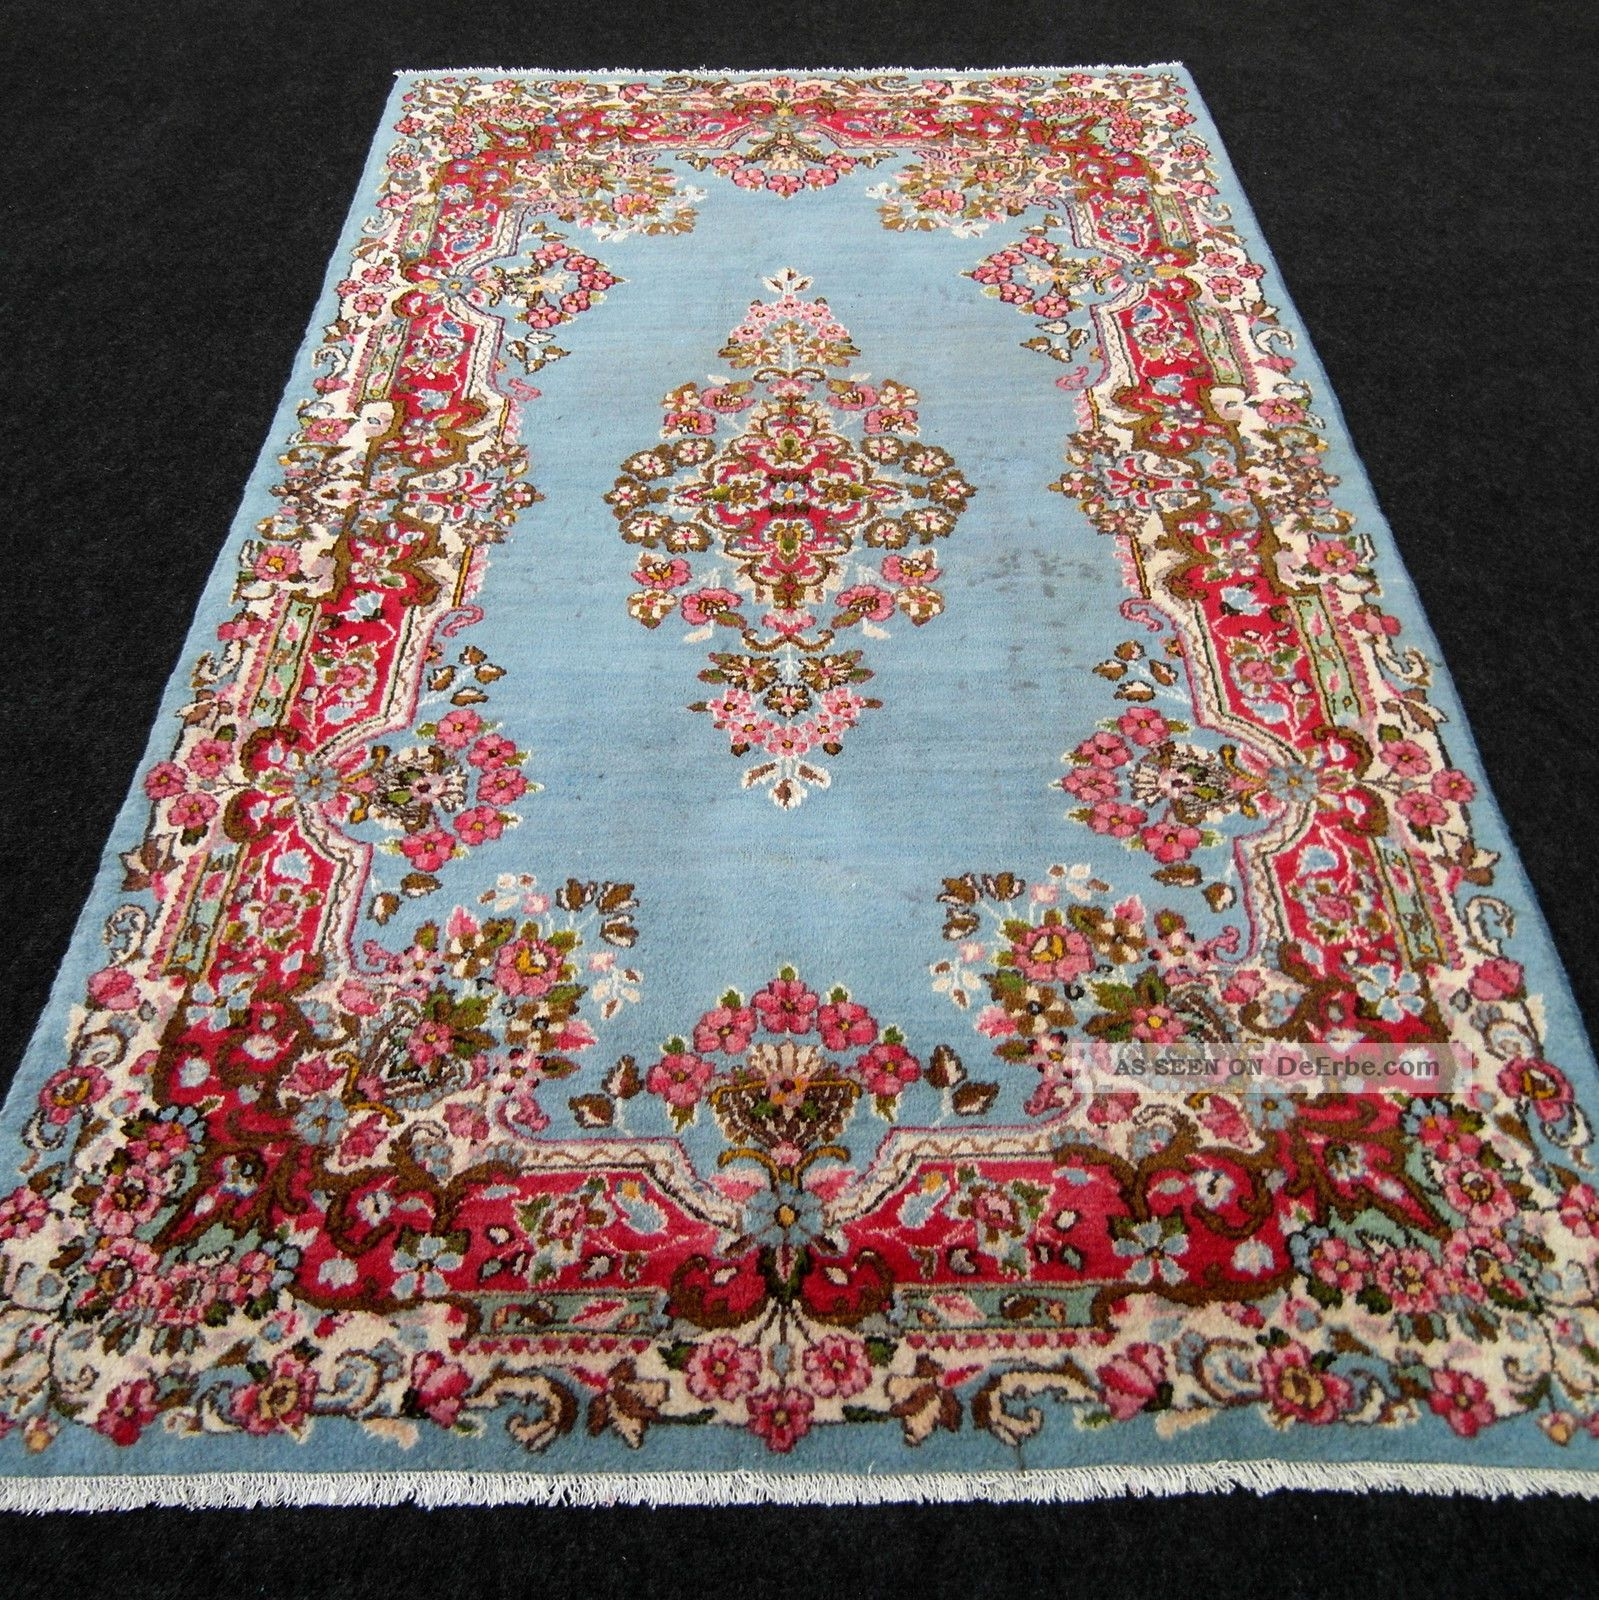 feiner alter orient teppich blau 204 x 122 cm perserteppich blue old carpet rug. Black Bedroom Furniture Sets. Home Design Ideas